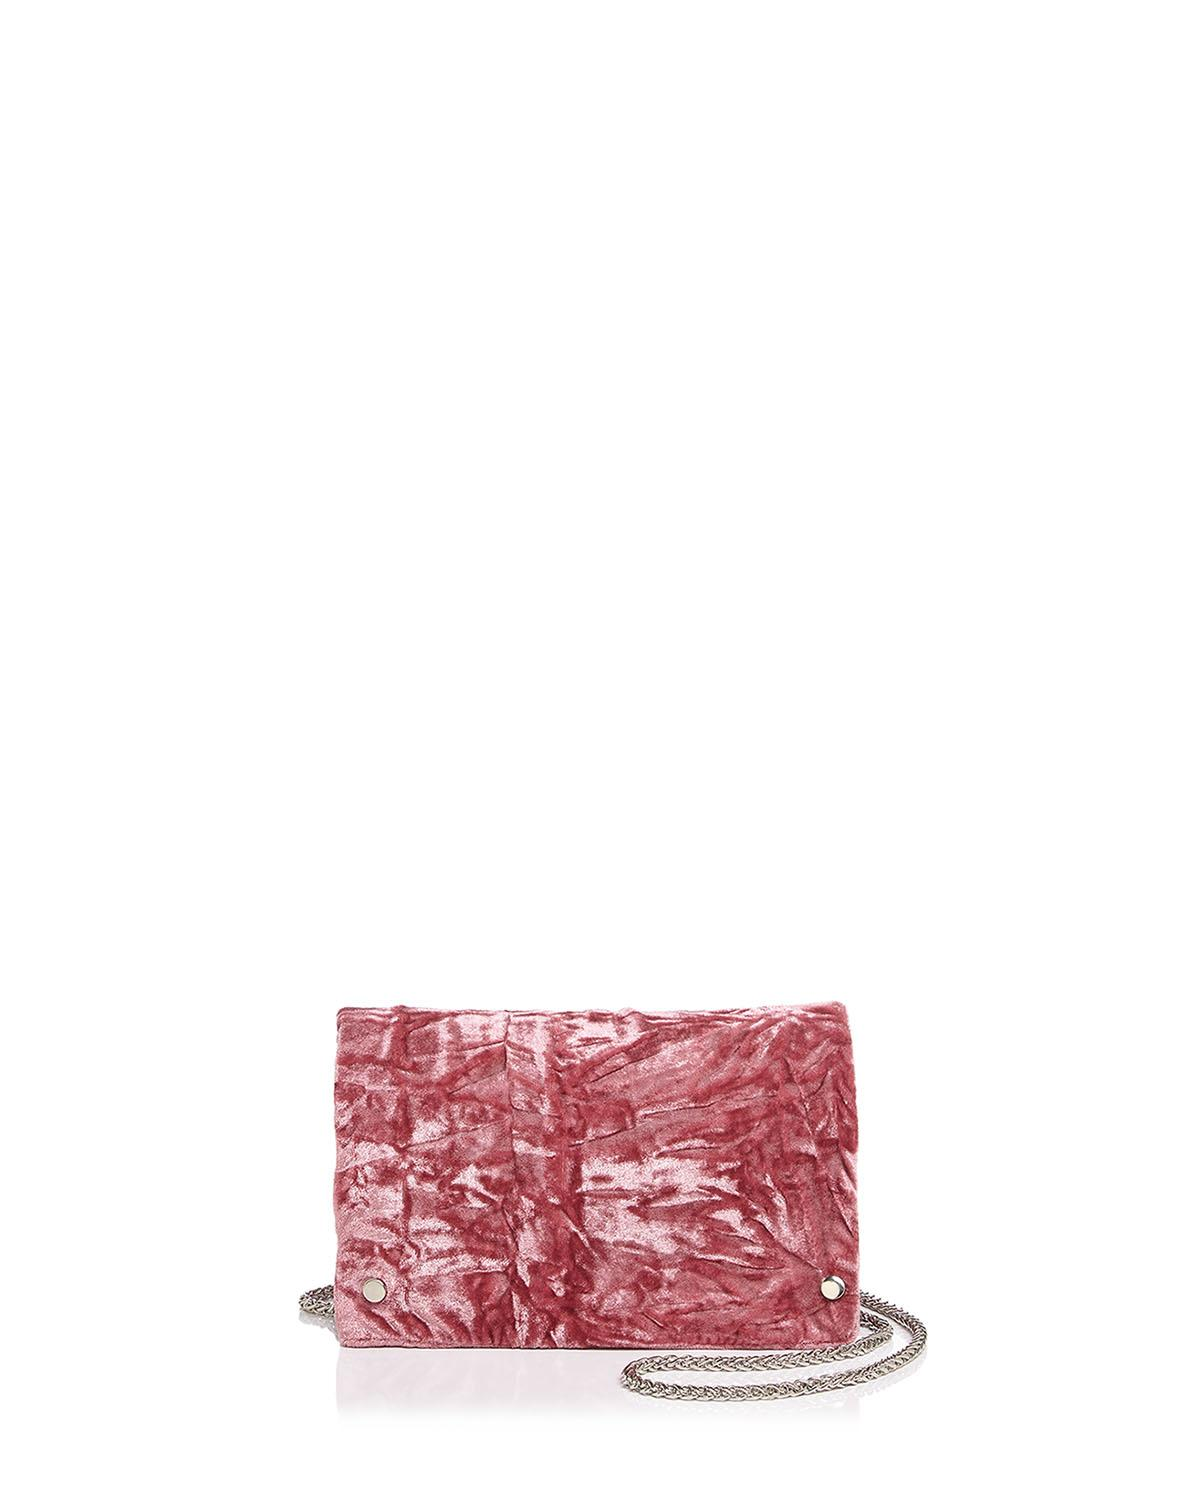 Street Level Toni Crushed Velvet Crossbody at Bloomingdale's // Price: $38.00 // (Image: Bloomingdale's // bloomingdales.com){&amp;nbsp;}<p></p>